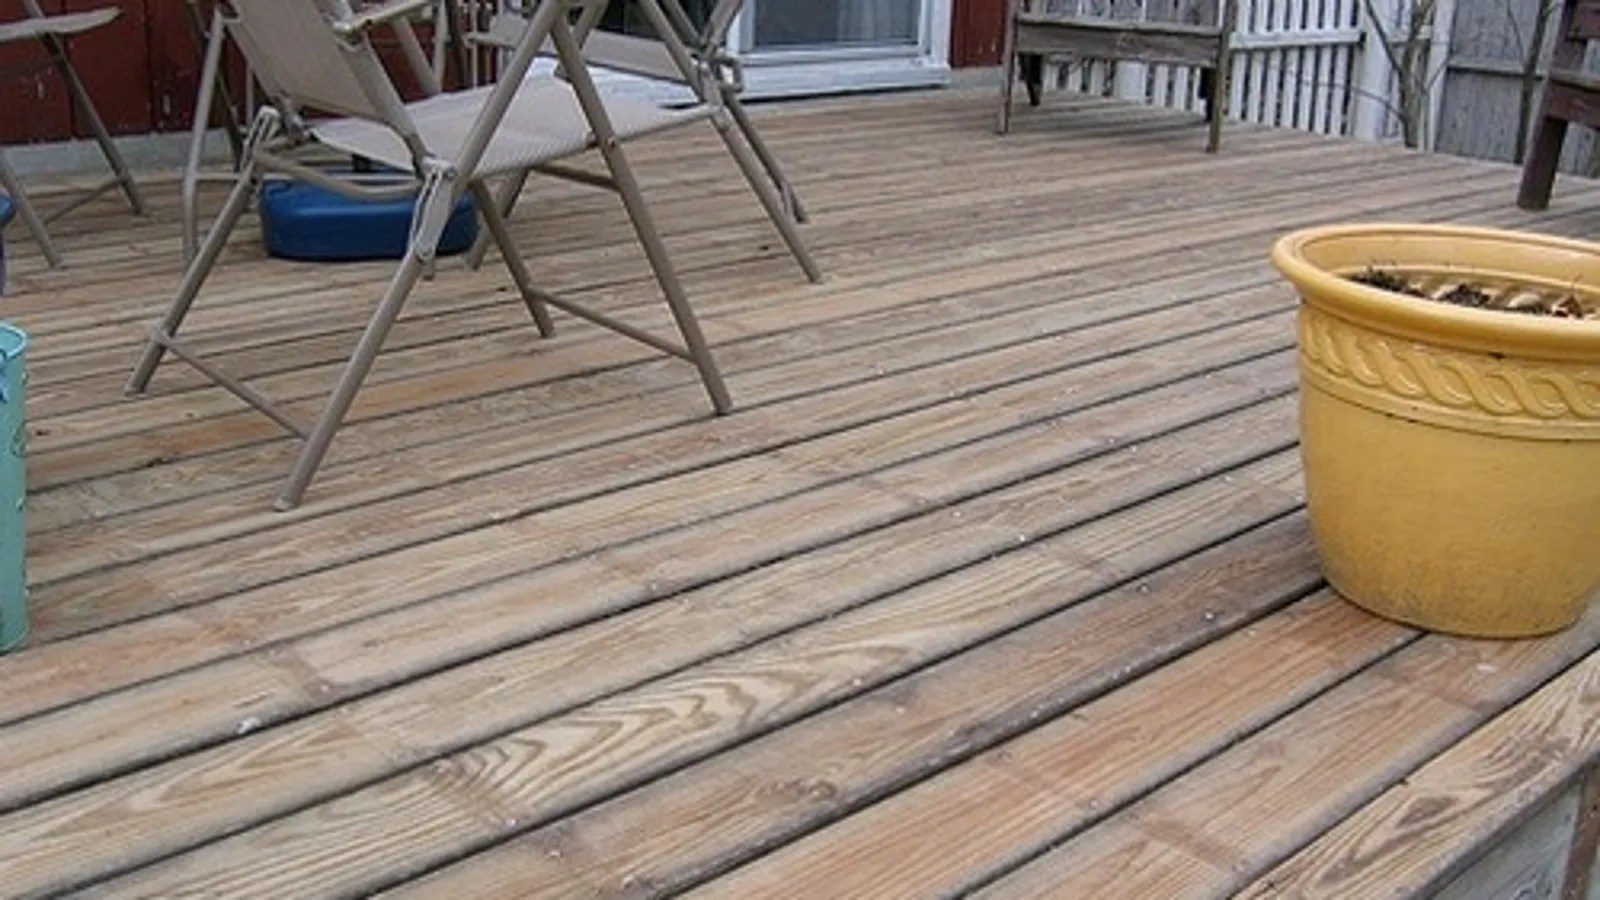 Preferential Screws Sanding A Deck By Hand Flip Your Deck Boards Before Shelling Out A New Deck Sanding A Deck houzz-02 Sanding A Deck